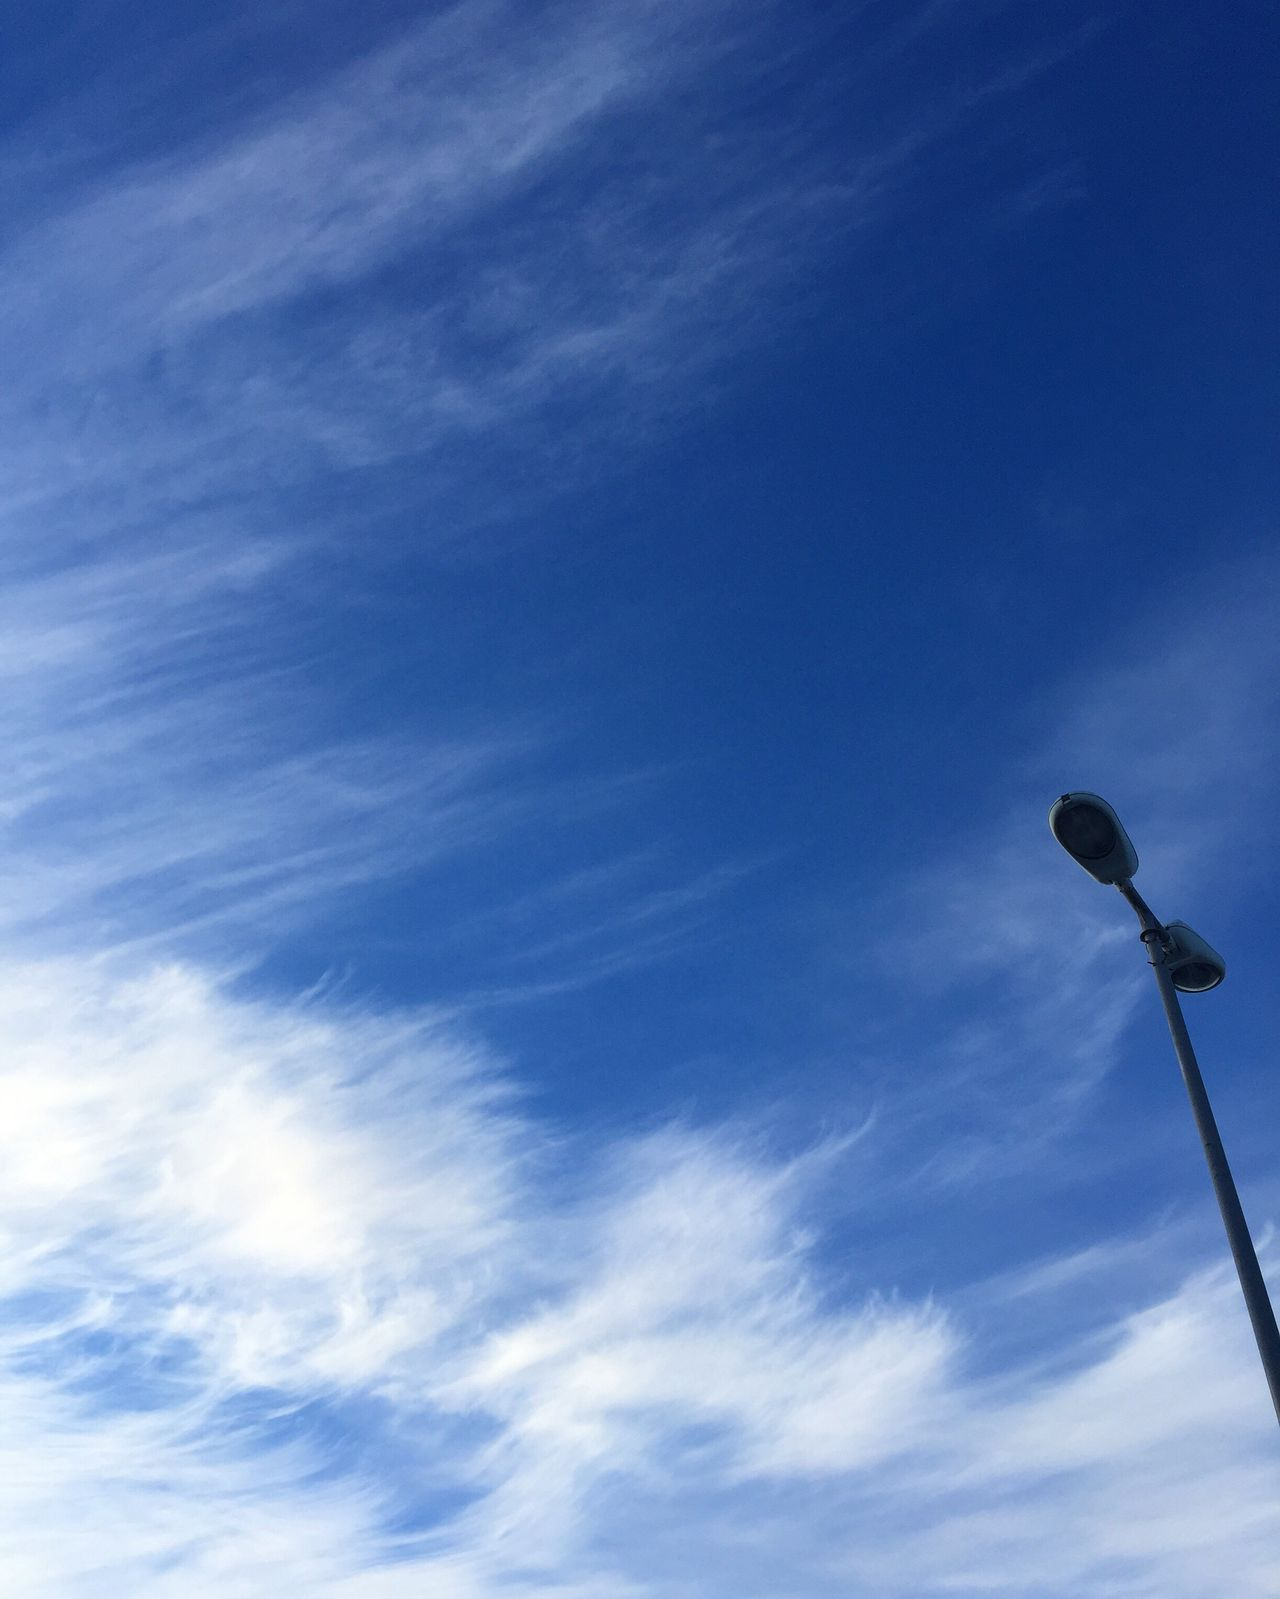 Cloud - Sky Sky Low Angle View No People Outdoors Minimalistic Minimalism_masters Minimalist Eyeemphotography Check This Out Minimalmood Minimal Minimalism Minimalobsession In Greece Tranquility Tranquil Scene Peaceful View Urban City Lamp